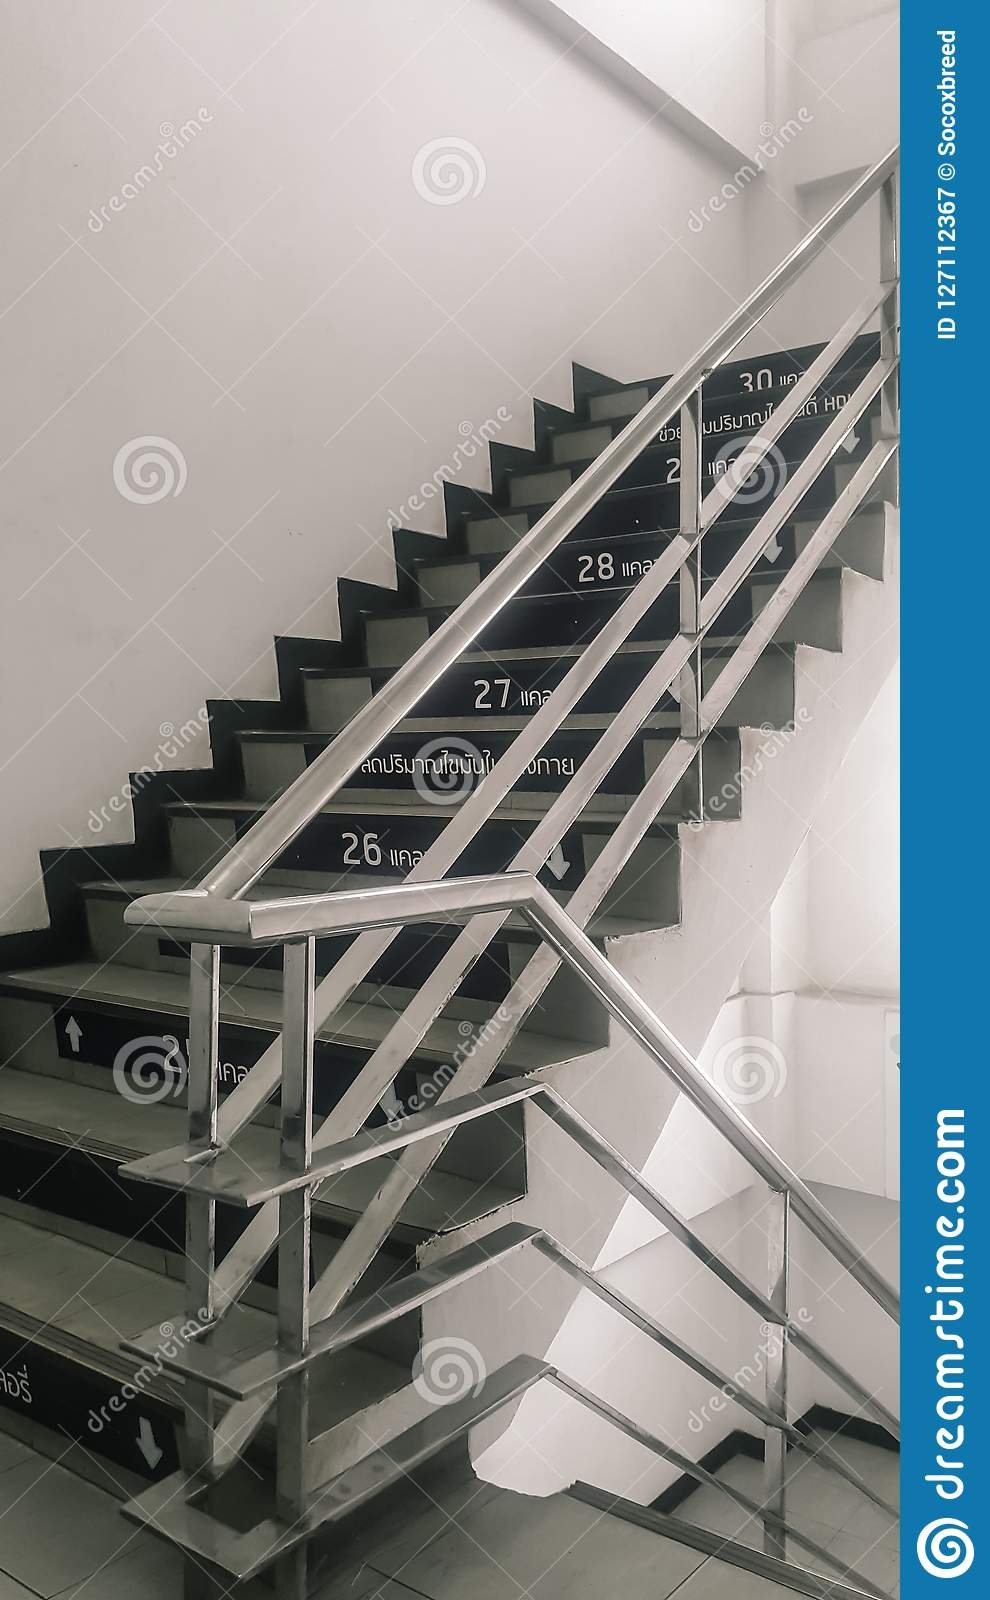 Stairs Up In The Building With Stainless Steel Handrails Stock   Stainless Handrails For Stairs   Toughened Glass   Outdoor   Mild Steel Handrail   Commercial Building   Metal